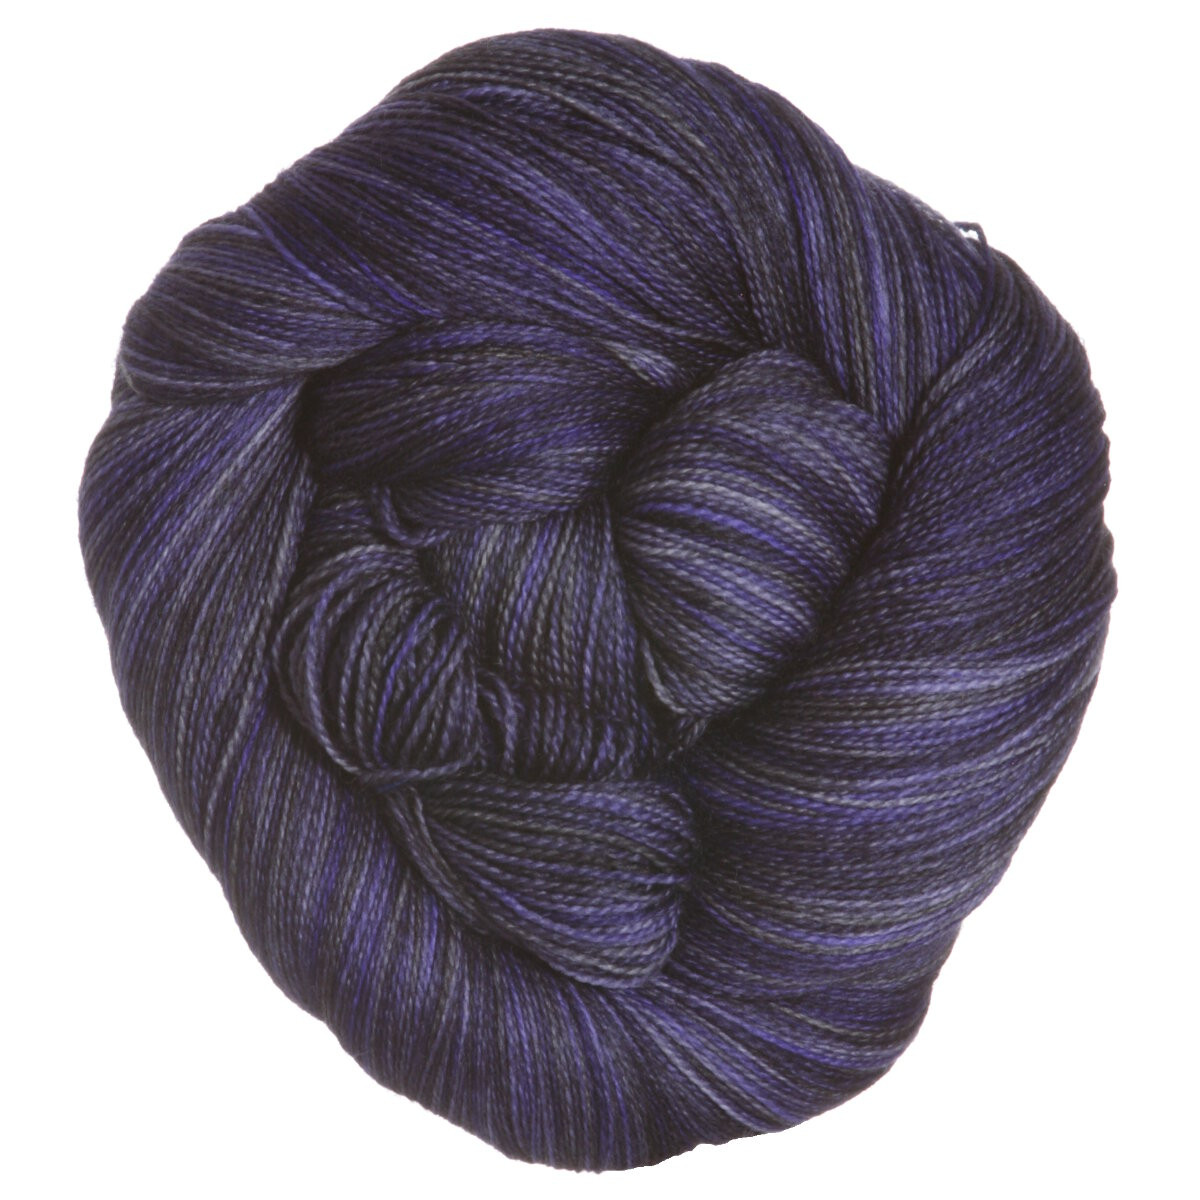 Lace Yarn Beautiful Madelinetosh tosh Lace Yarn Clematis Reviews at Jimmy Of Amazing 44 Pictures Lace Yarn